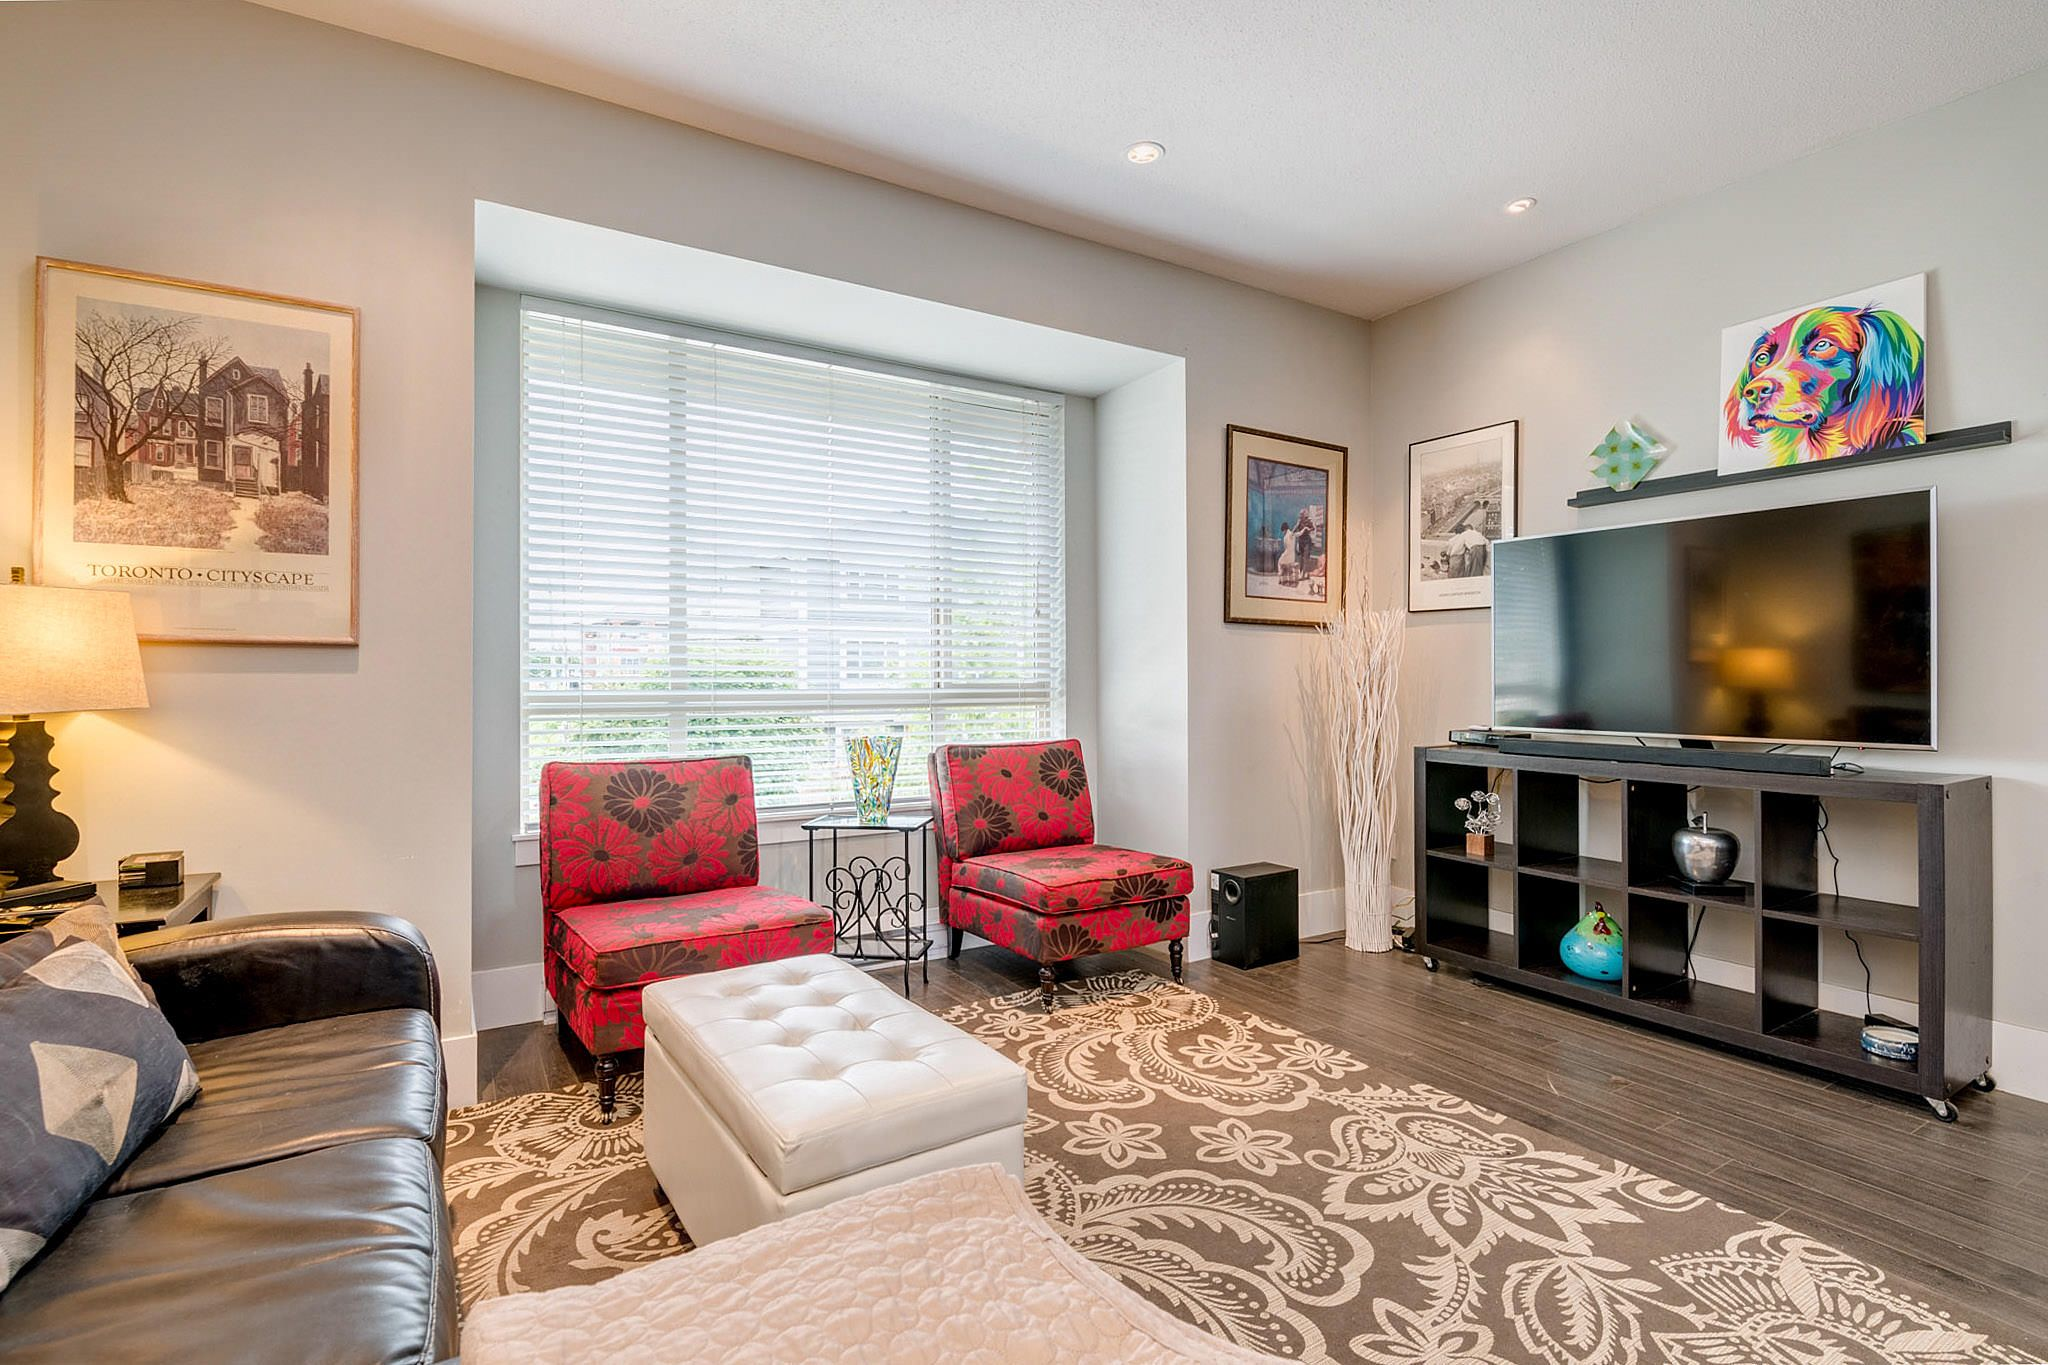 Photo 6: Photos: 10 19742 55A Street in Langley: Langley City Townhouse for sale : MLS®# R2388093